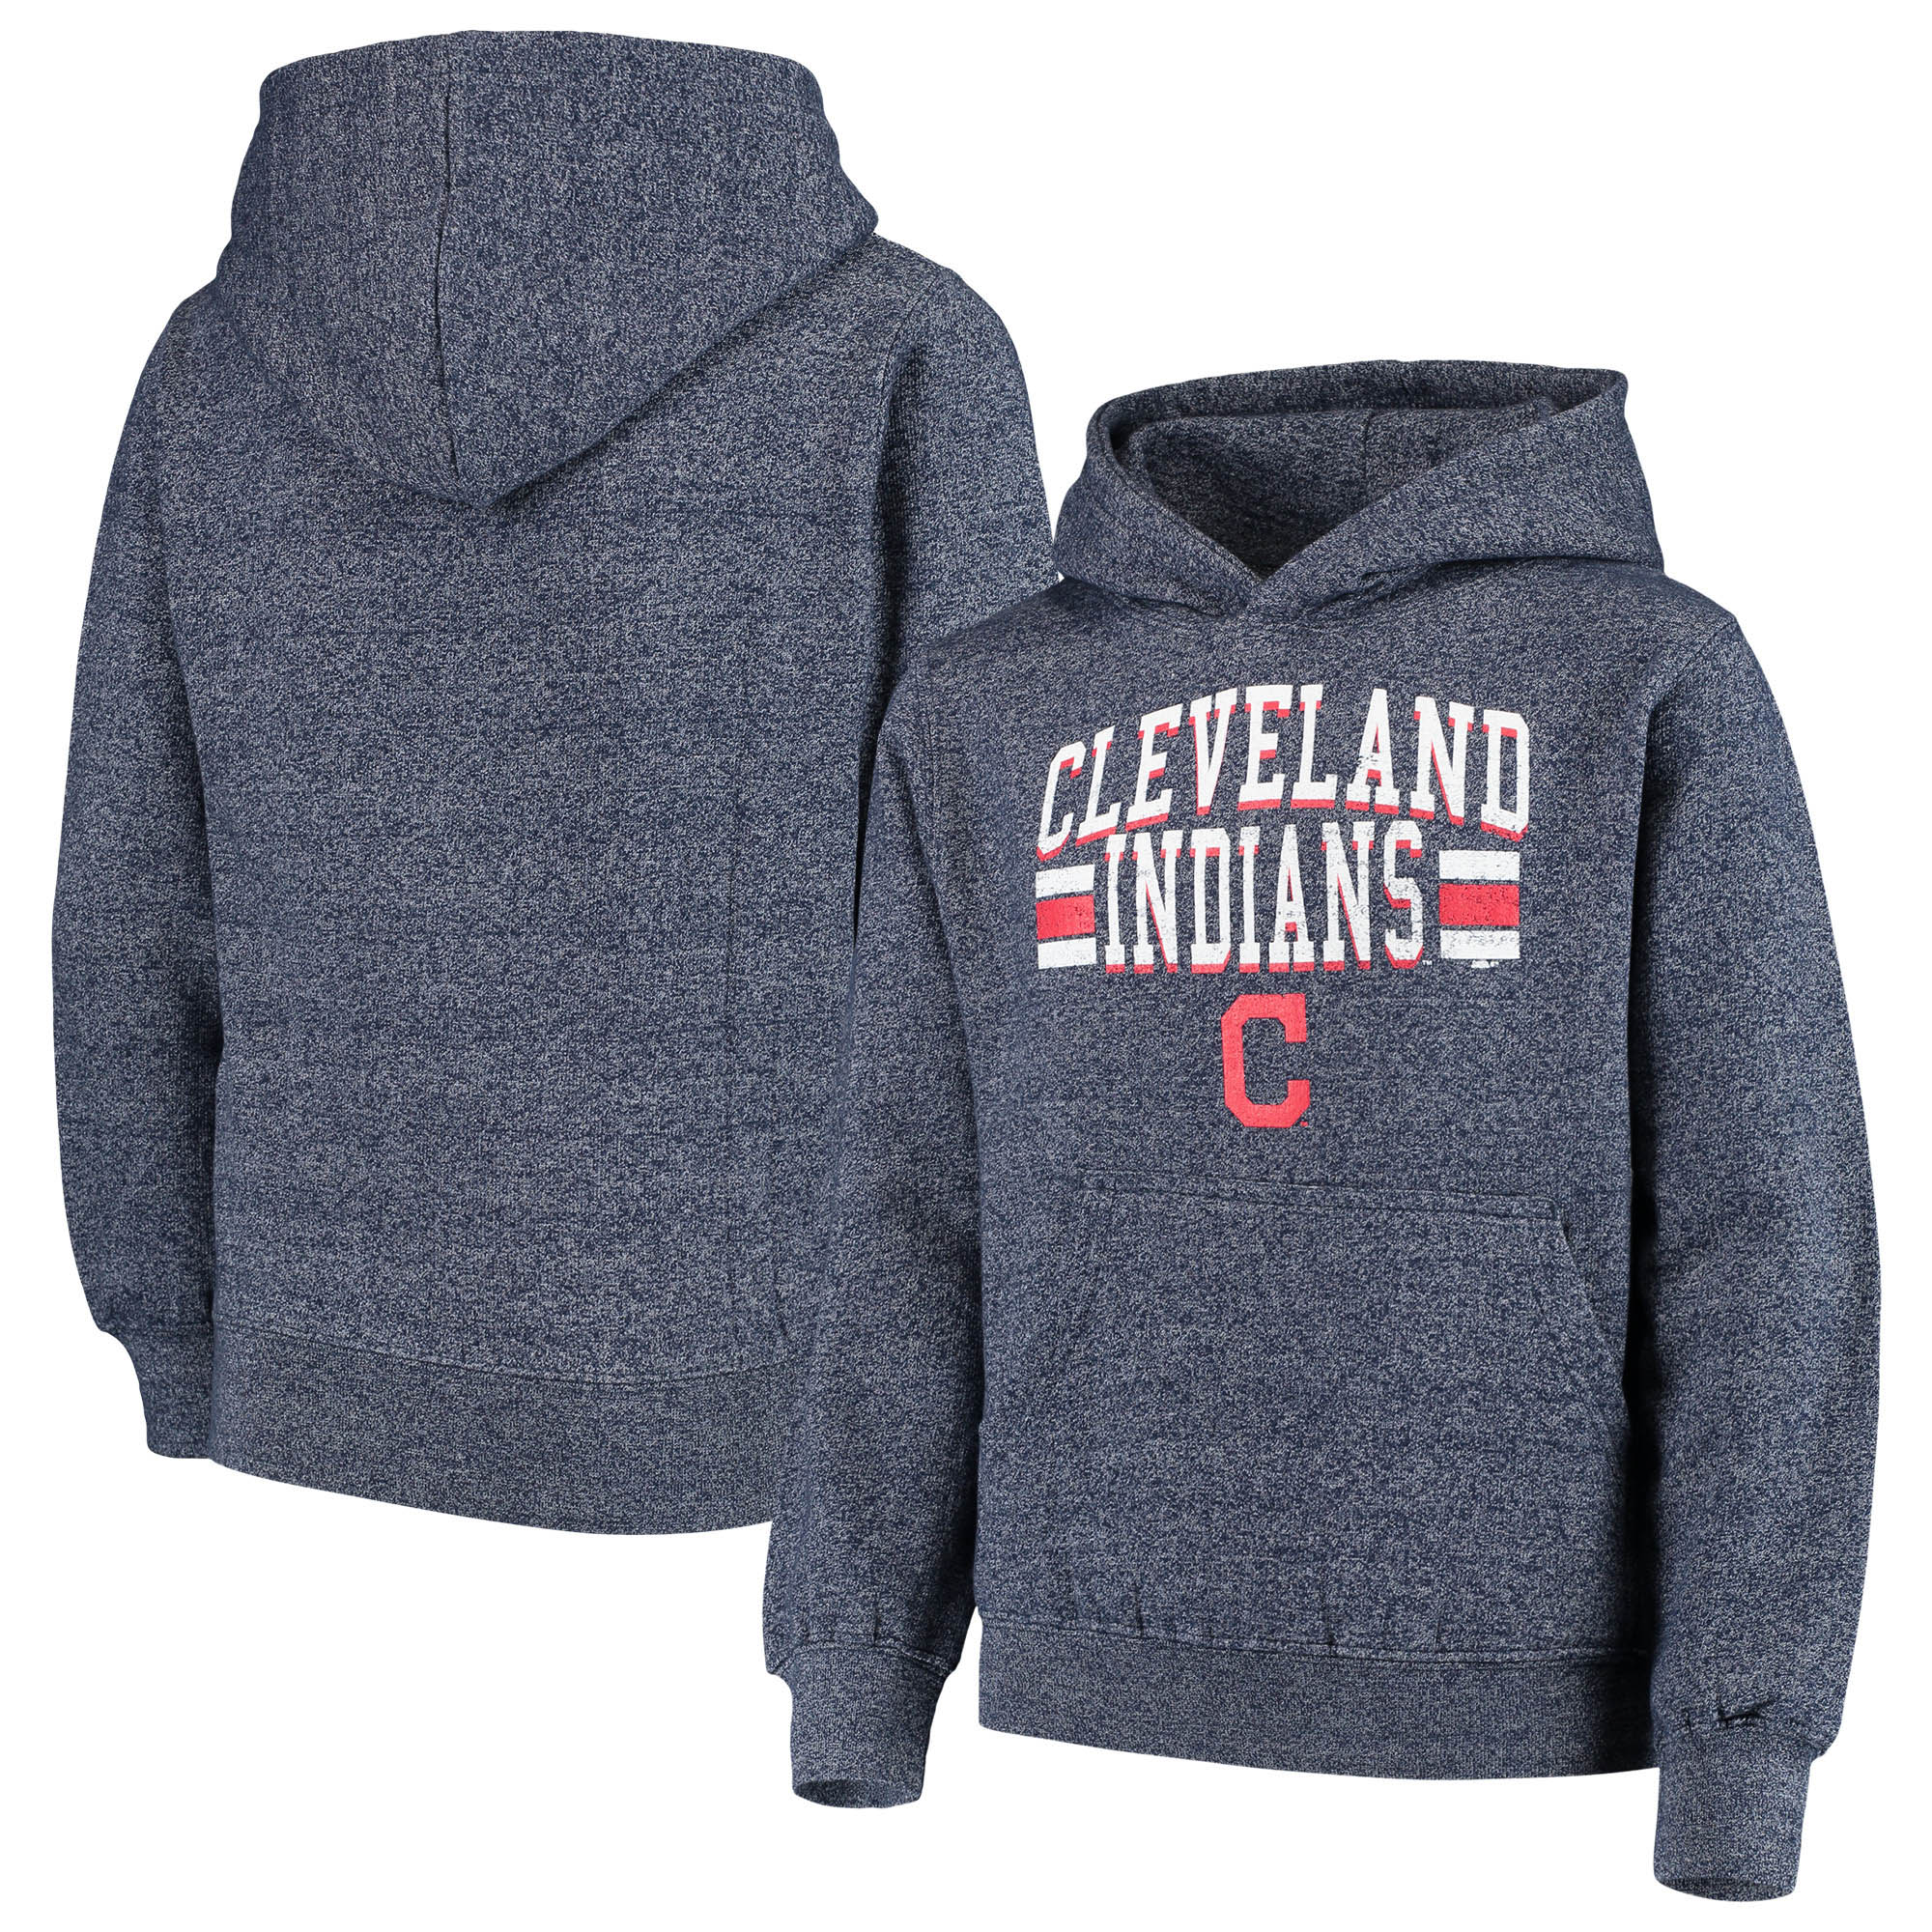 Cleveland Indians Stitches Youth Sport Hoodie - Heathered Navy